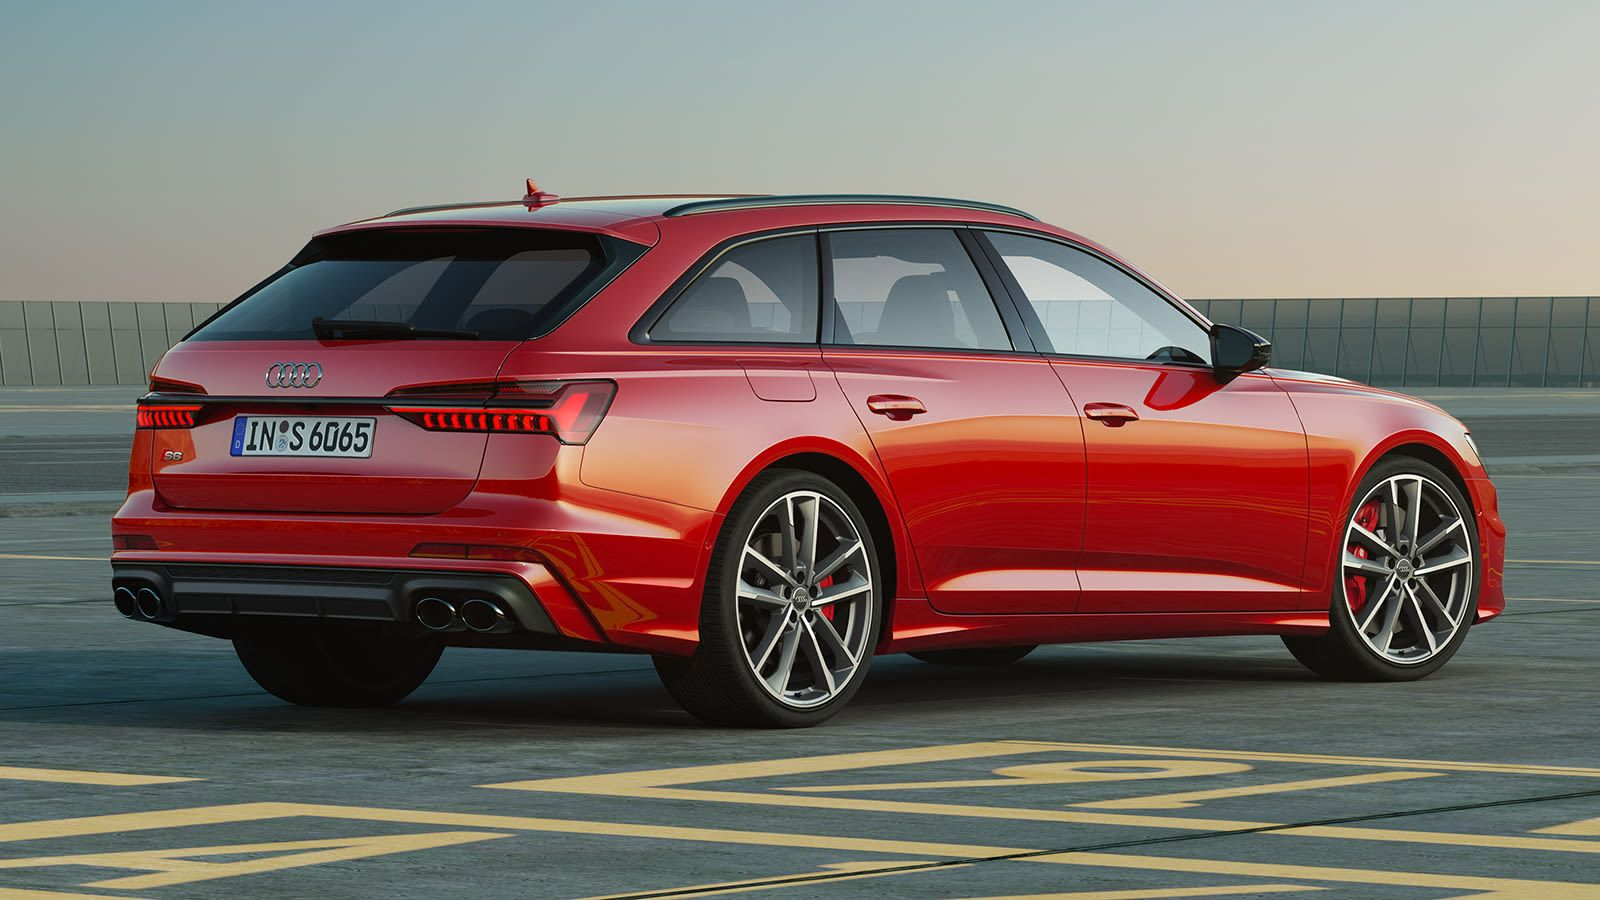 2019 Audi S6 Avant Diesel Bow Before Your New Wagon God With 516 Lb Ft Of Torque In 2020 Audi S6 Audi Wagon